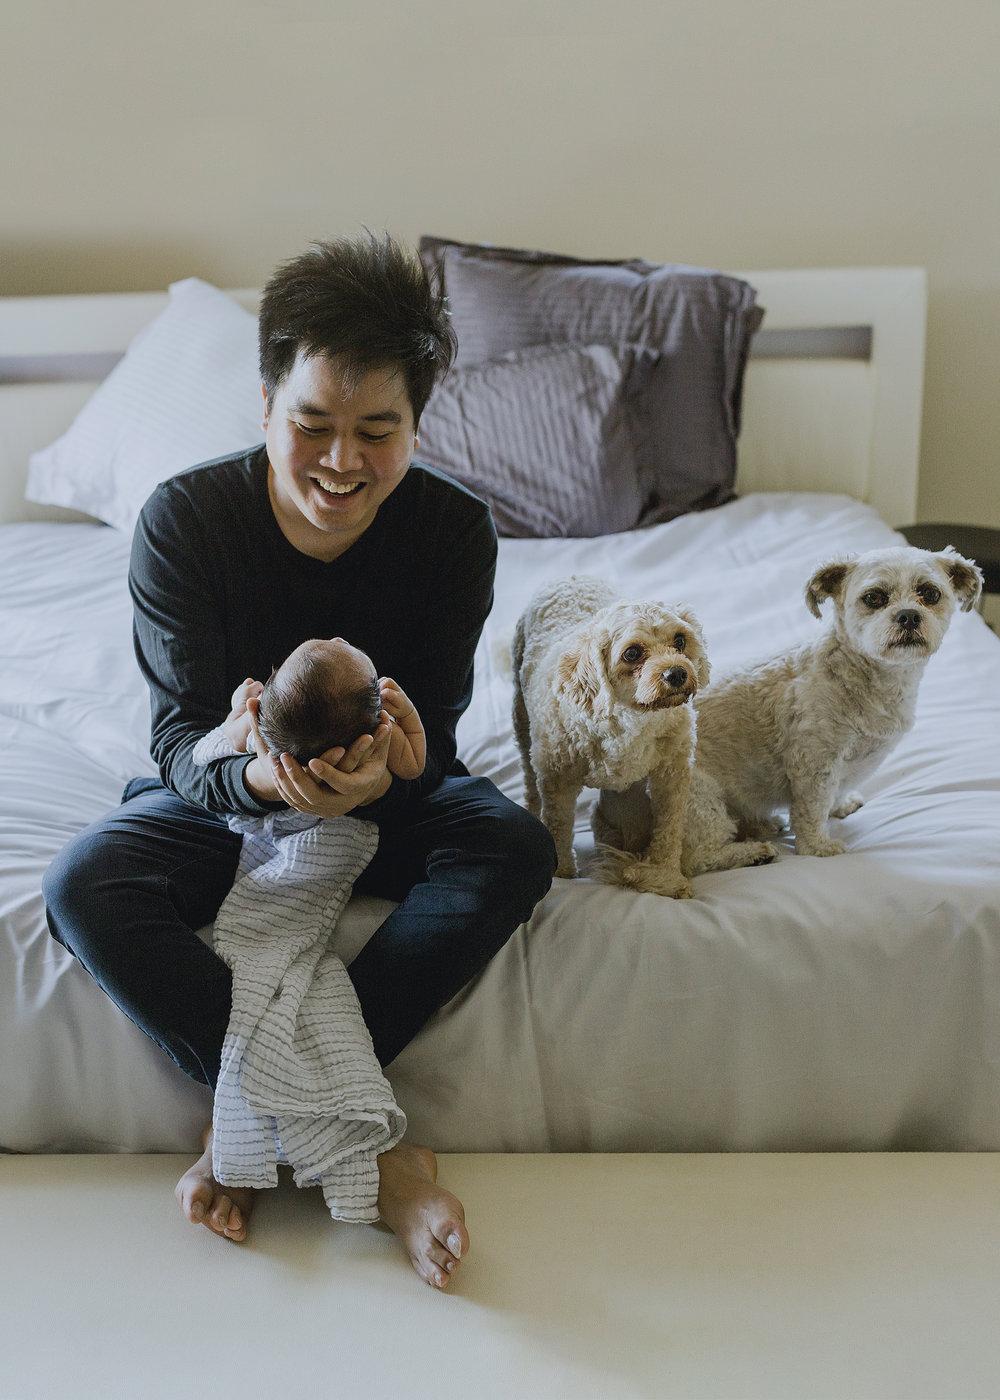 New Daddy besotted with his little family